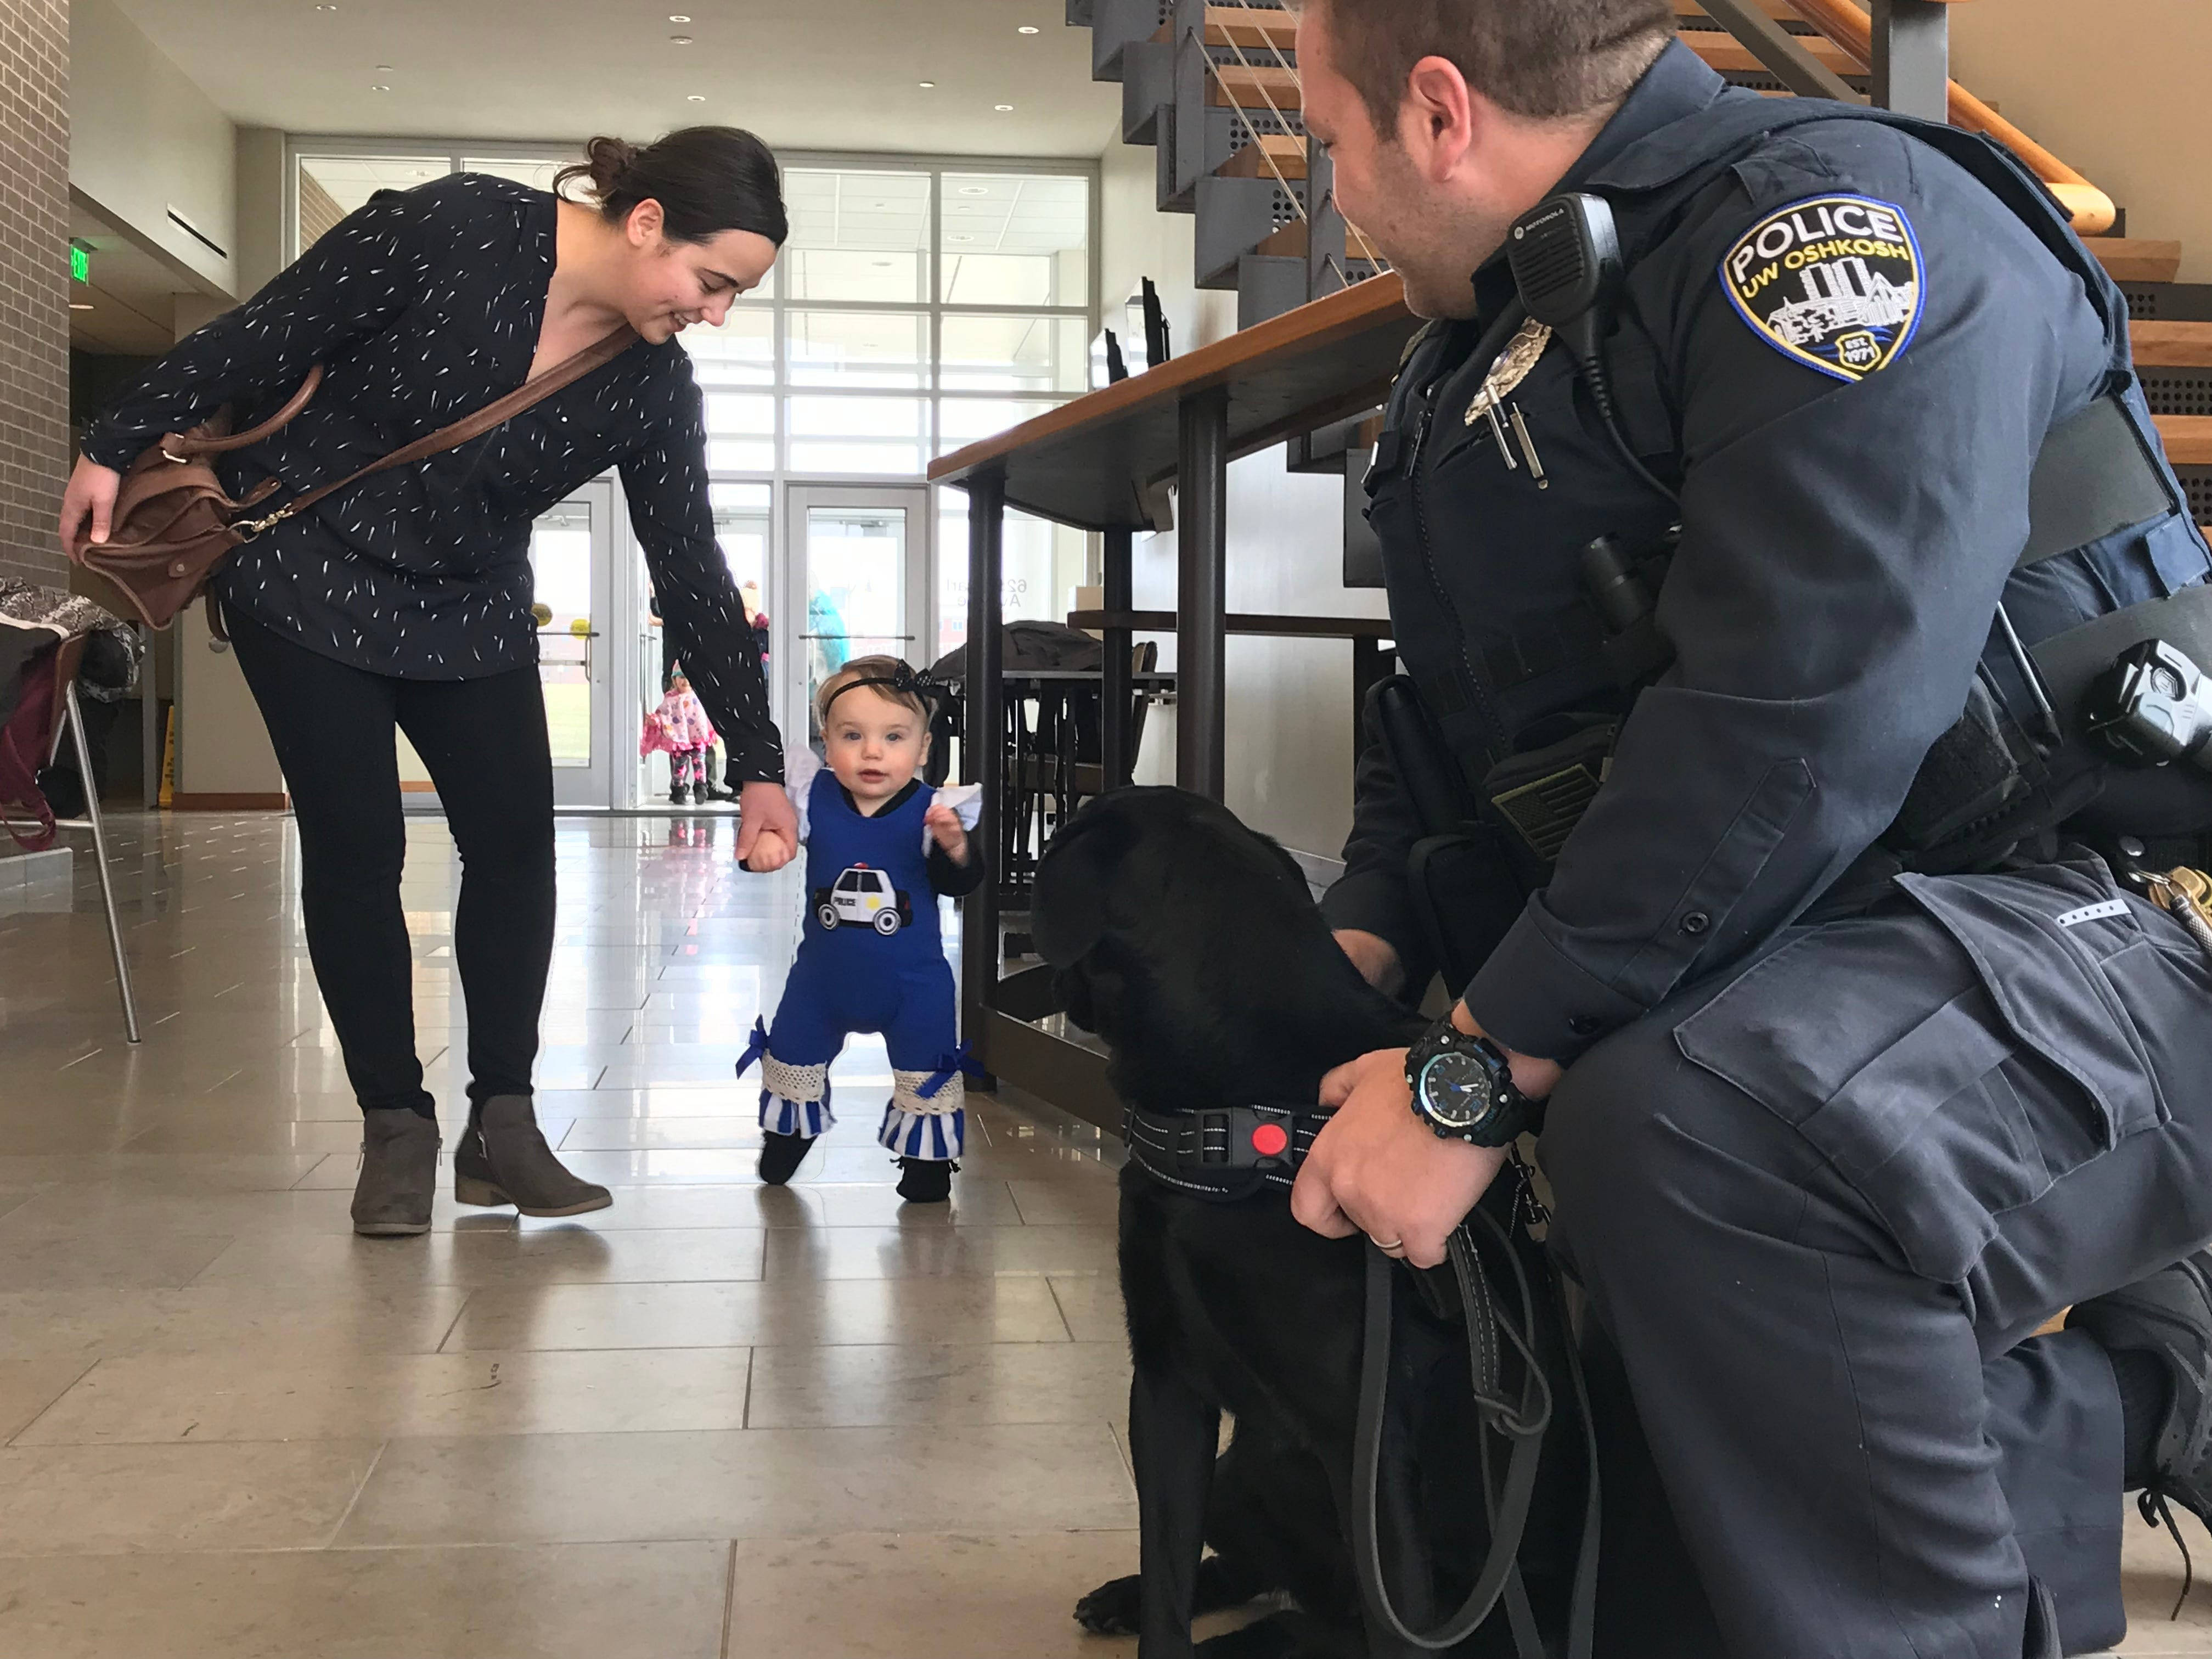 One-year-old Elspeth Kohlman arrives Monday at the swearing-in ceremony at the University of Wisconsin-Oshkosh to see her dog Skylar become a K-9 officer.